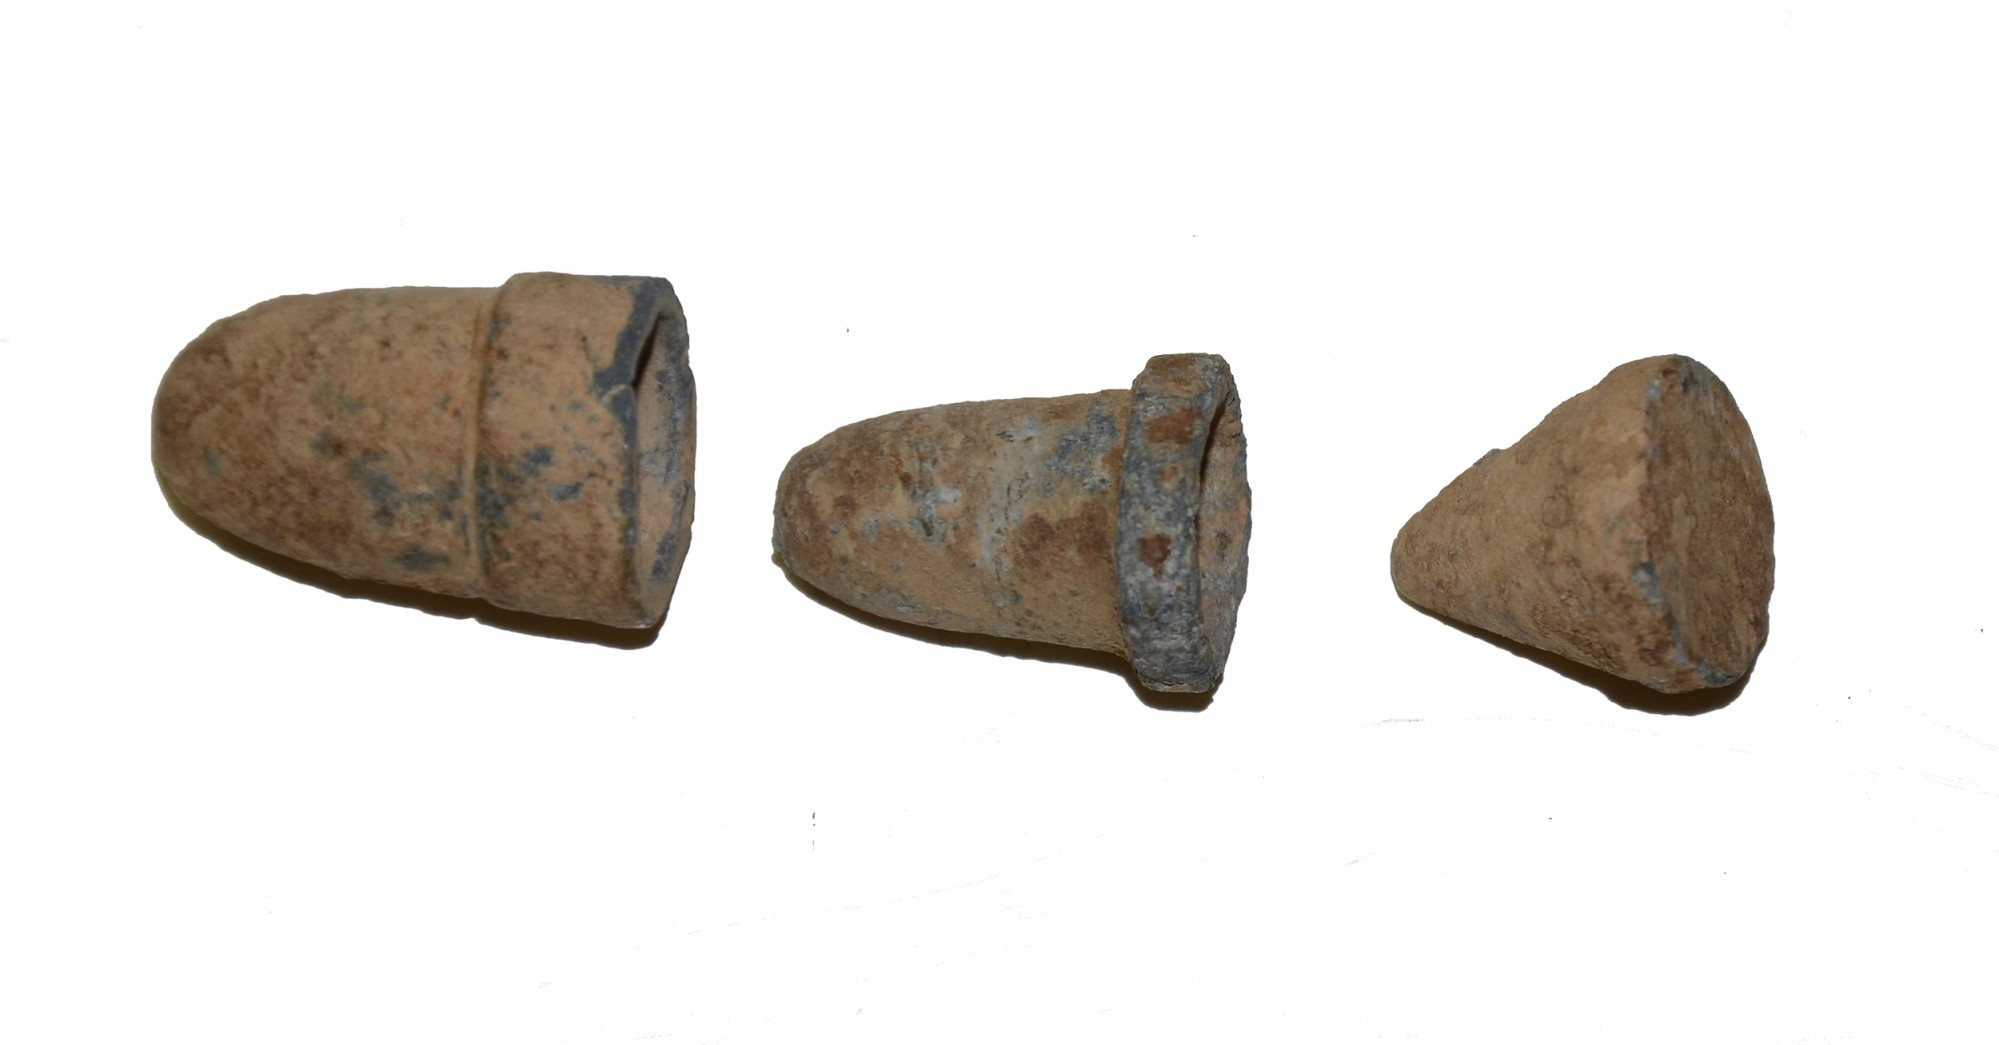 THREE PIECE SHALER BULLET RECOVERED NEAR RICHMOND, VIRGINIA